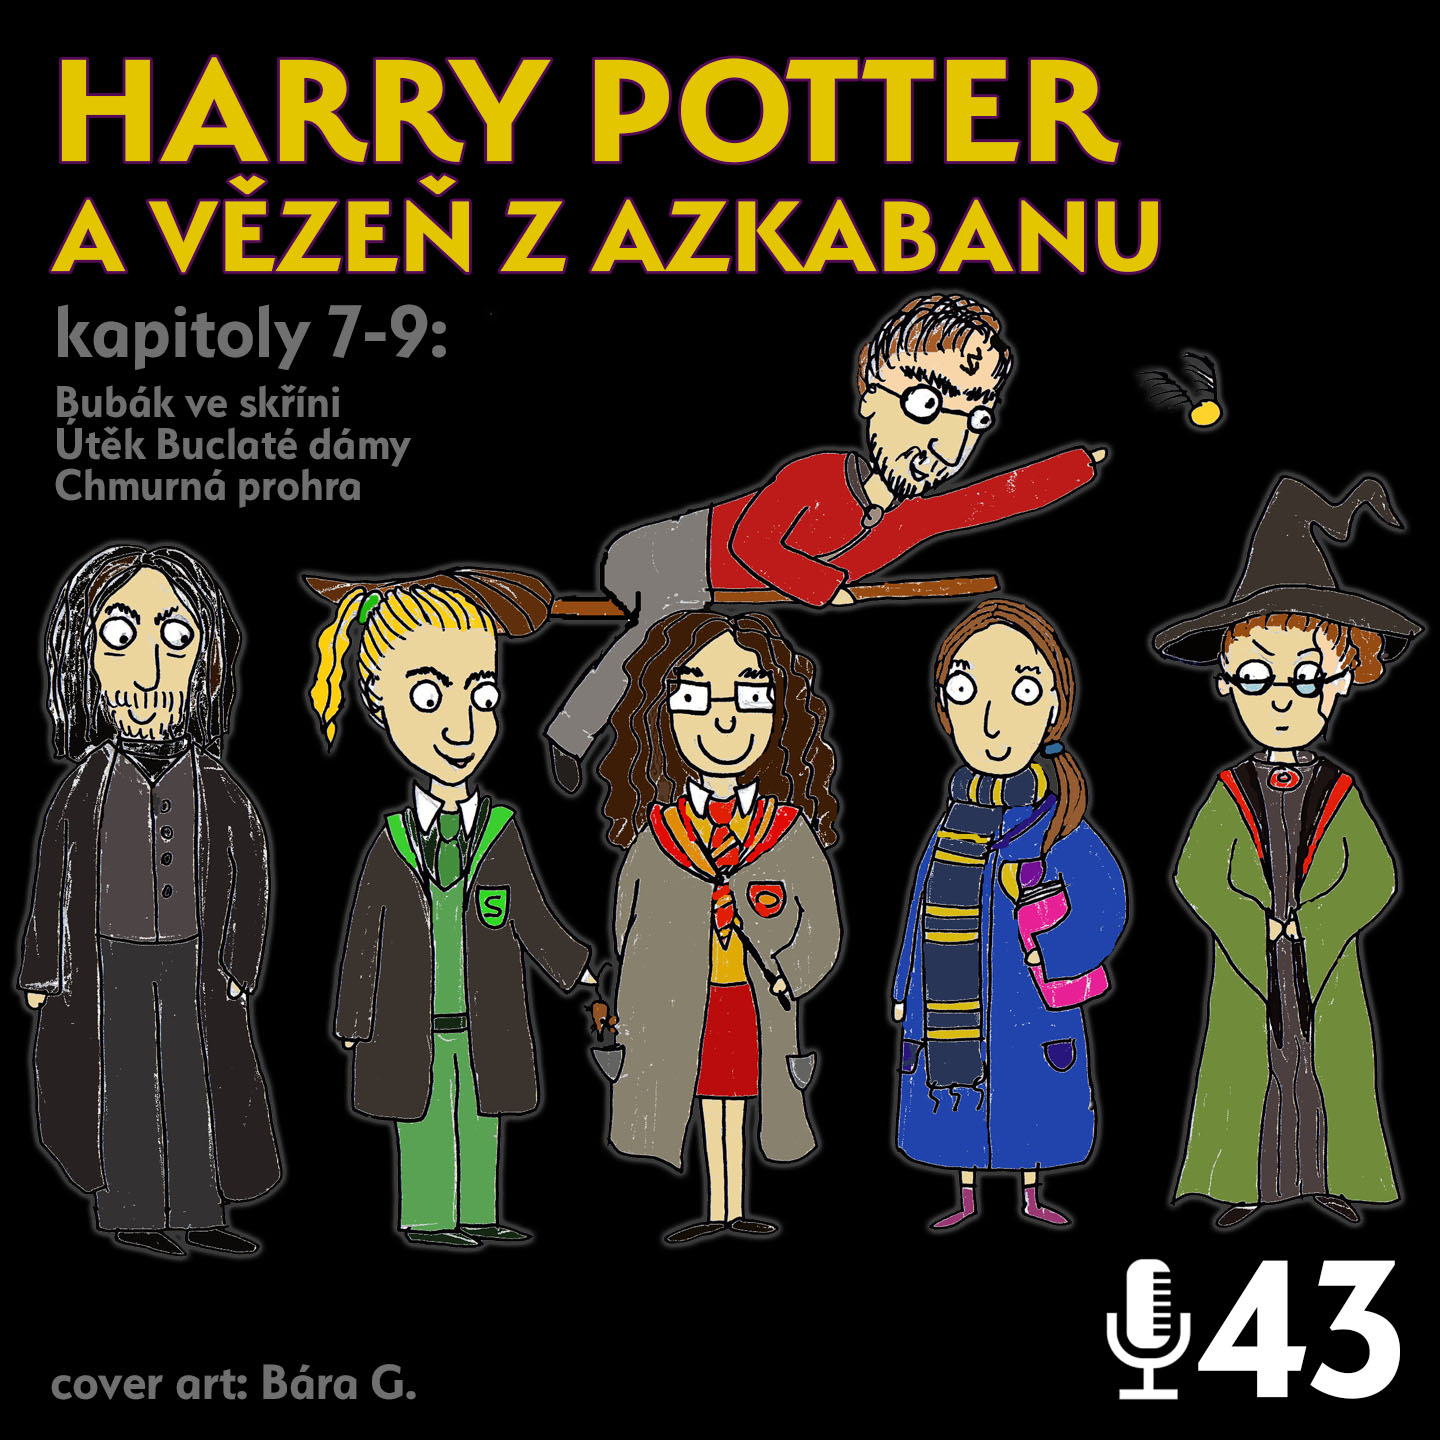 Epizoda 43 - Harry Potter 3.3